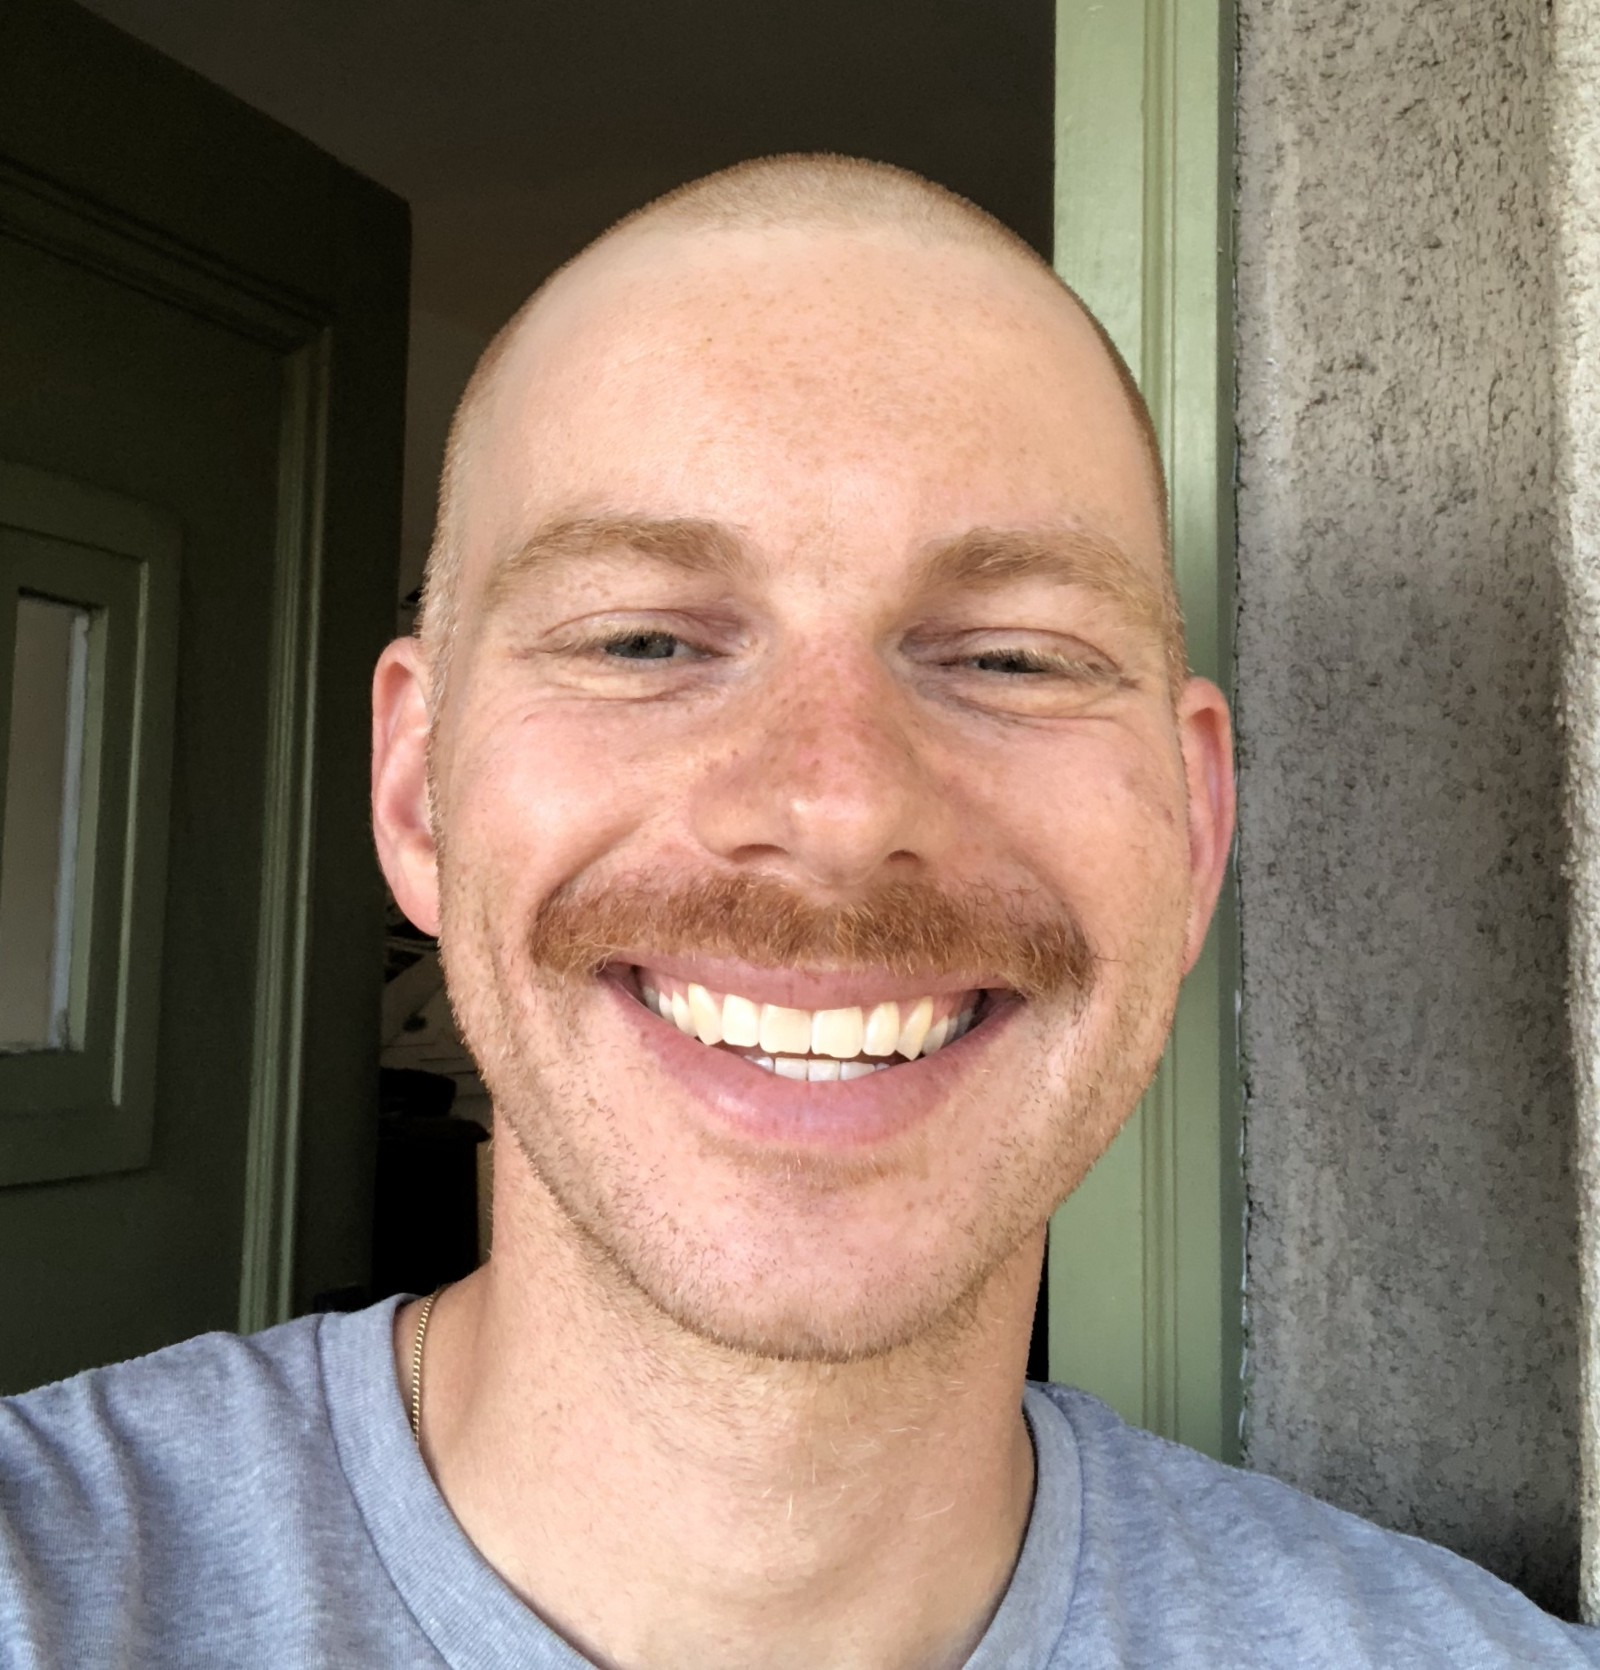 A real live smile, with a little bit of mustache for added oomph.